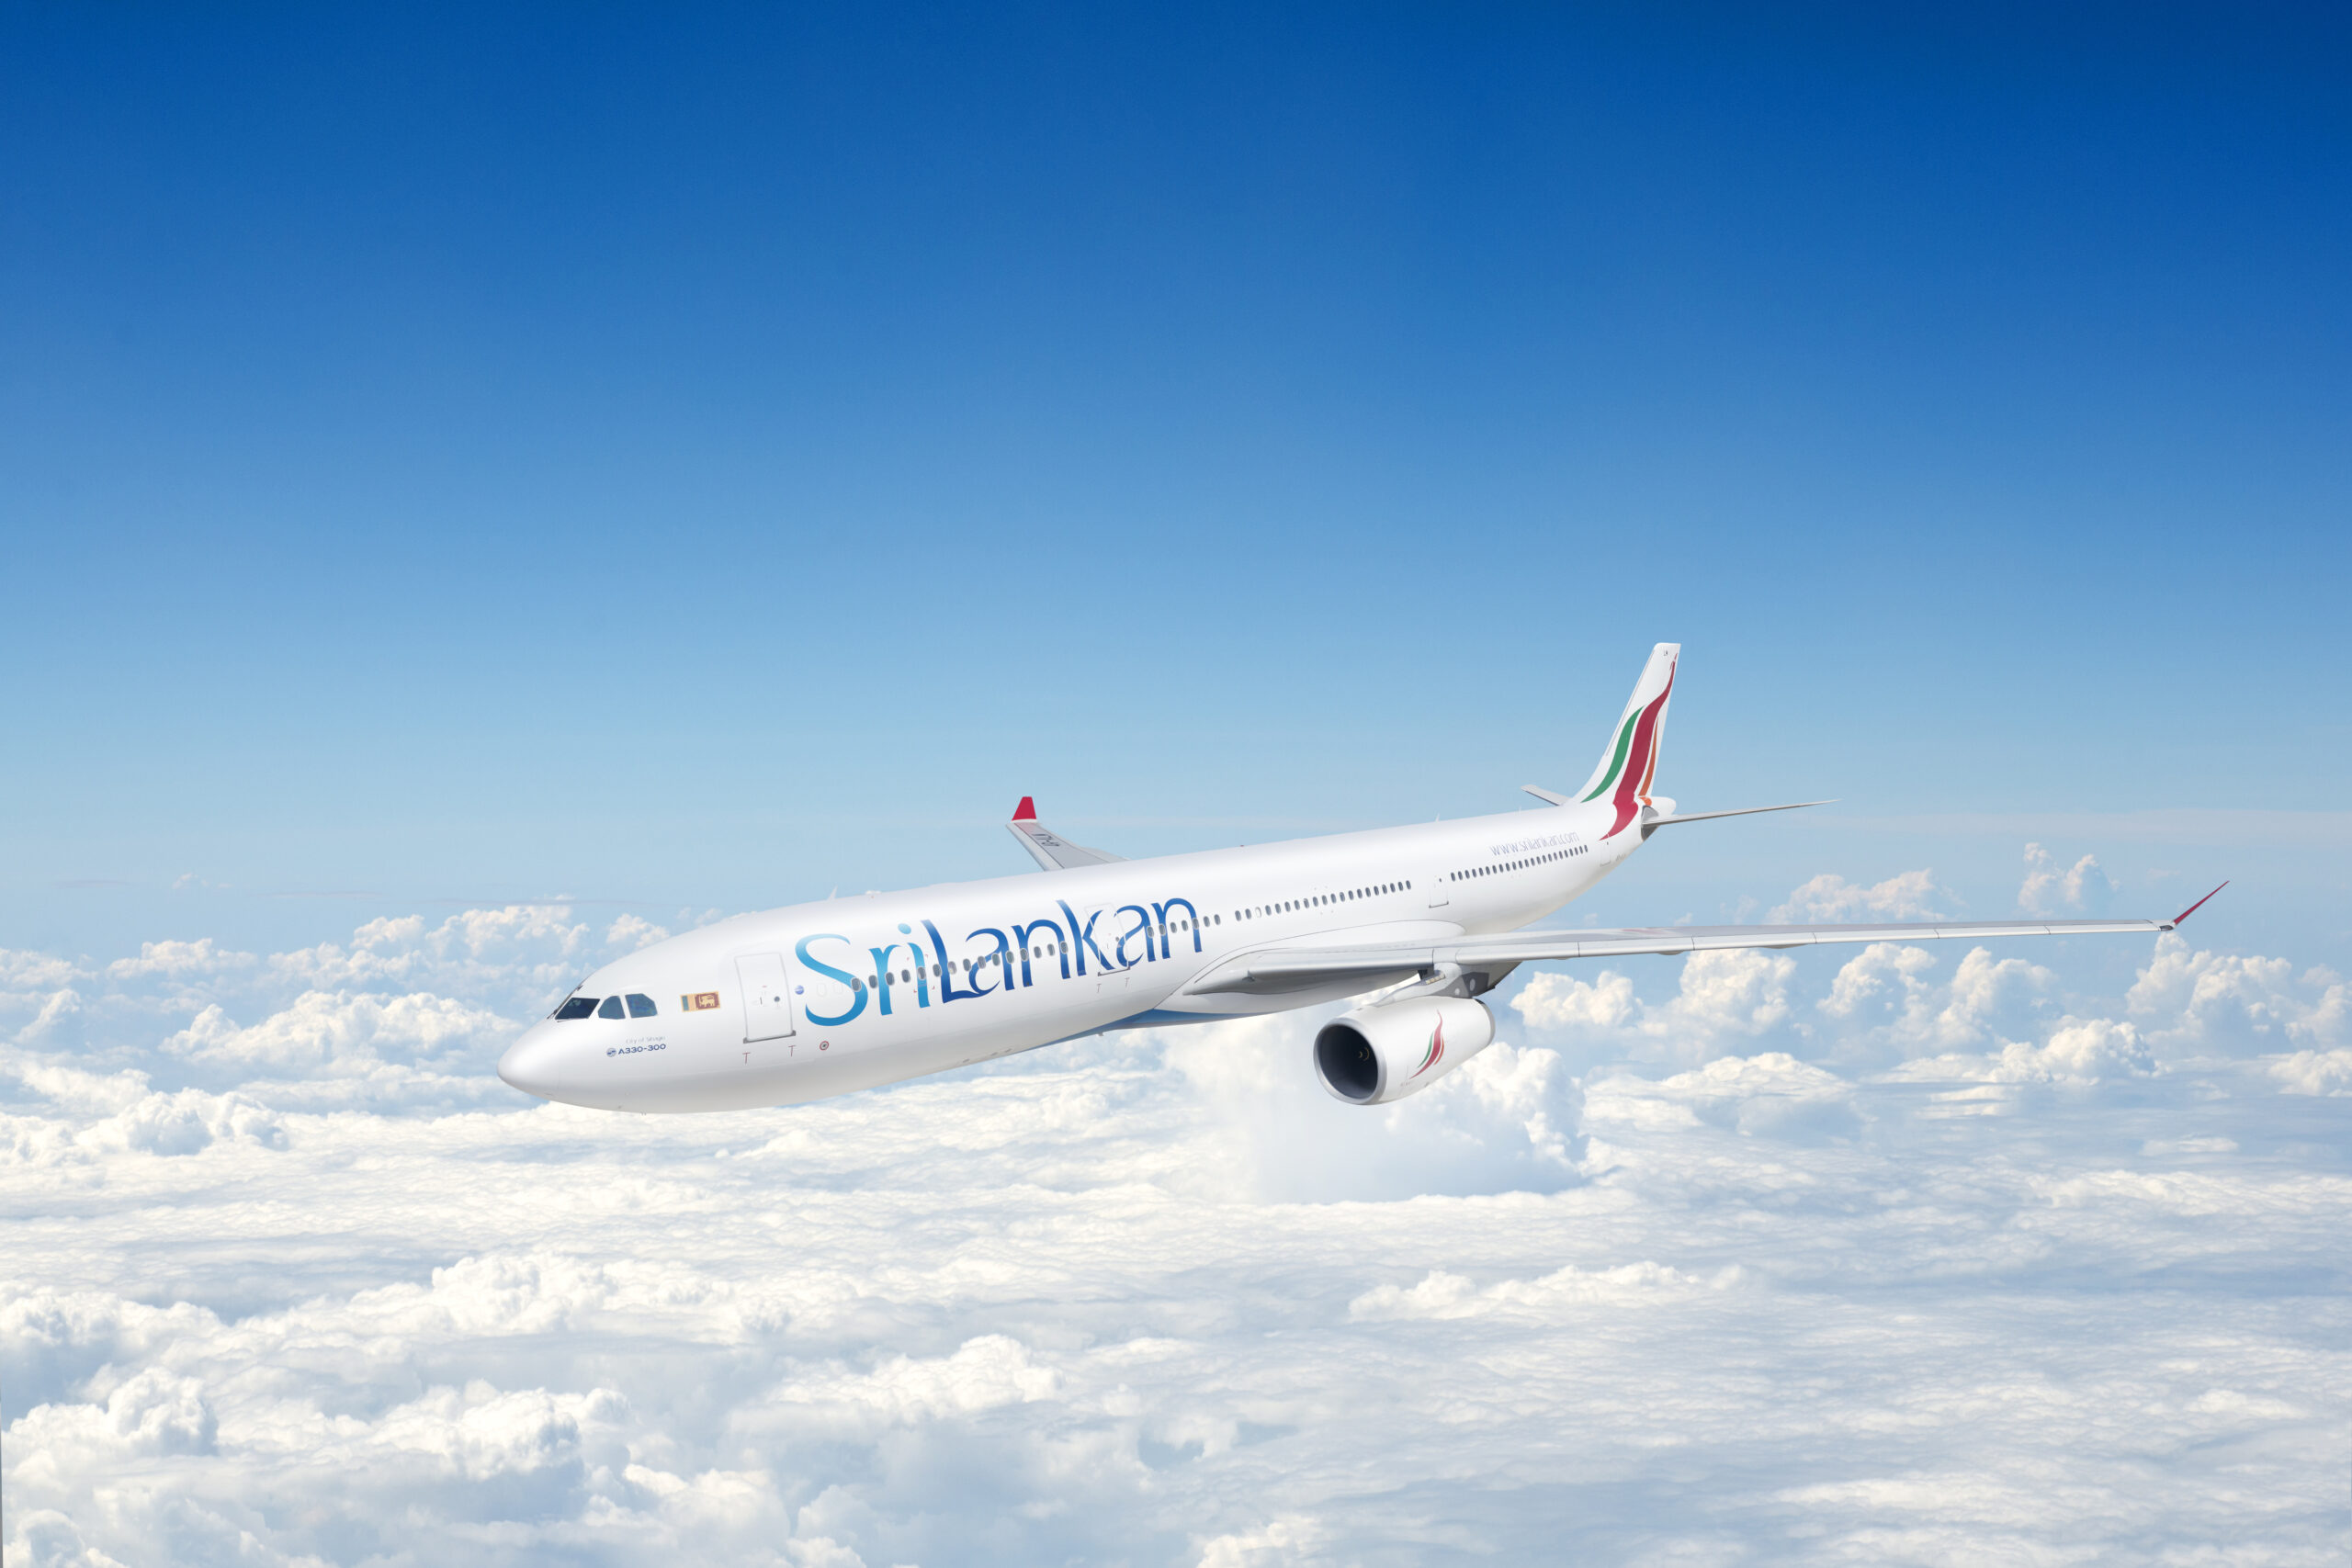 SriLankan Airlines commences trial of IATA Travel Pass on selected sectors